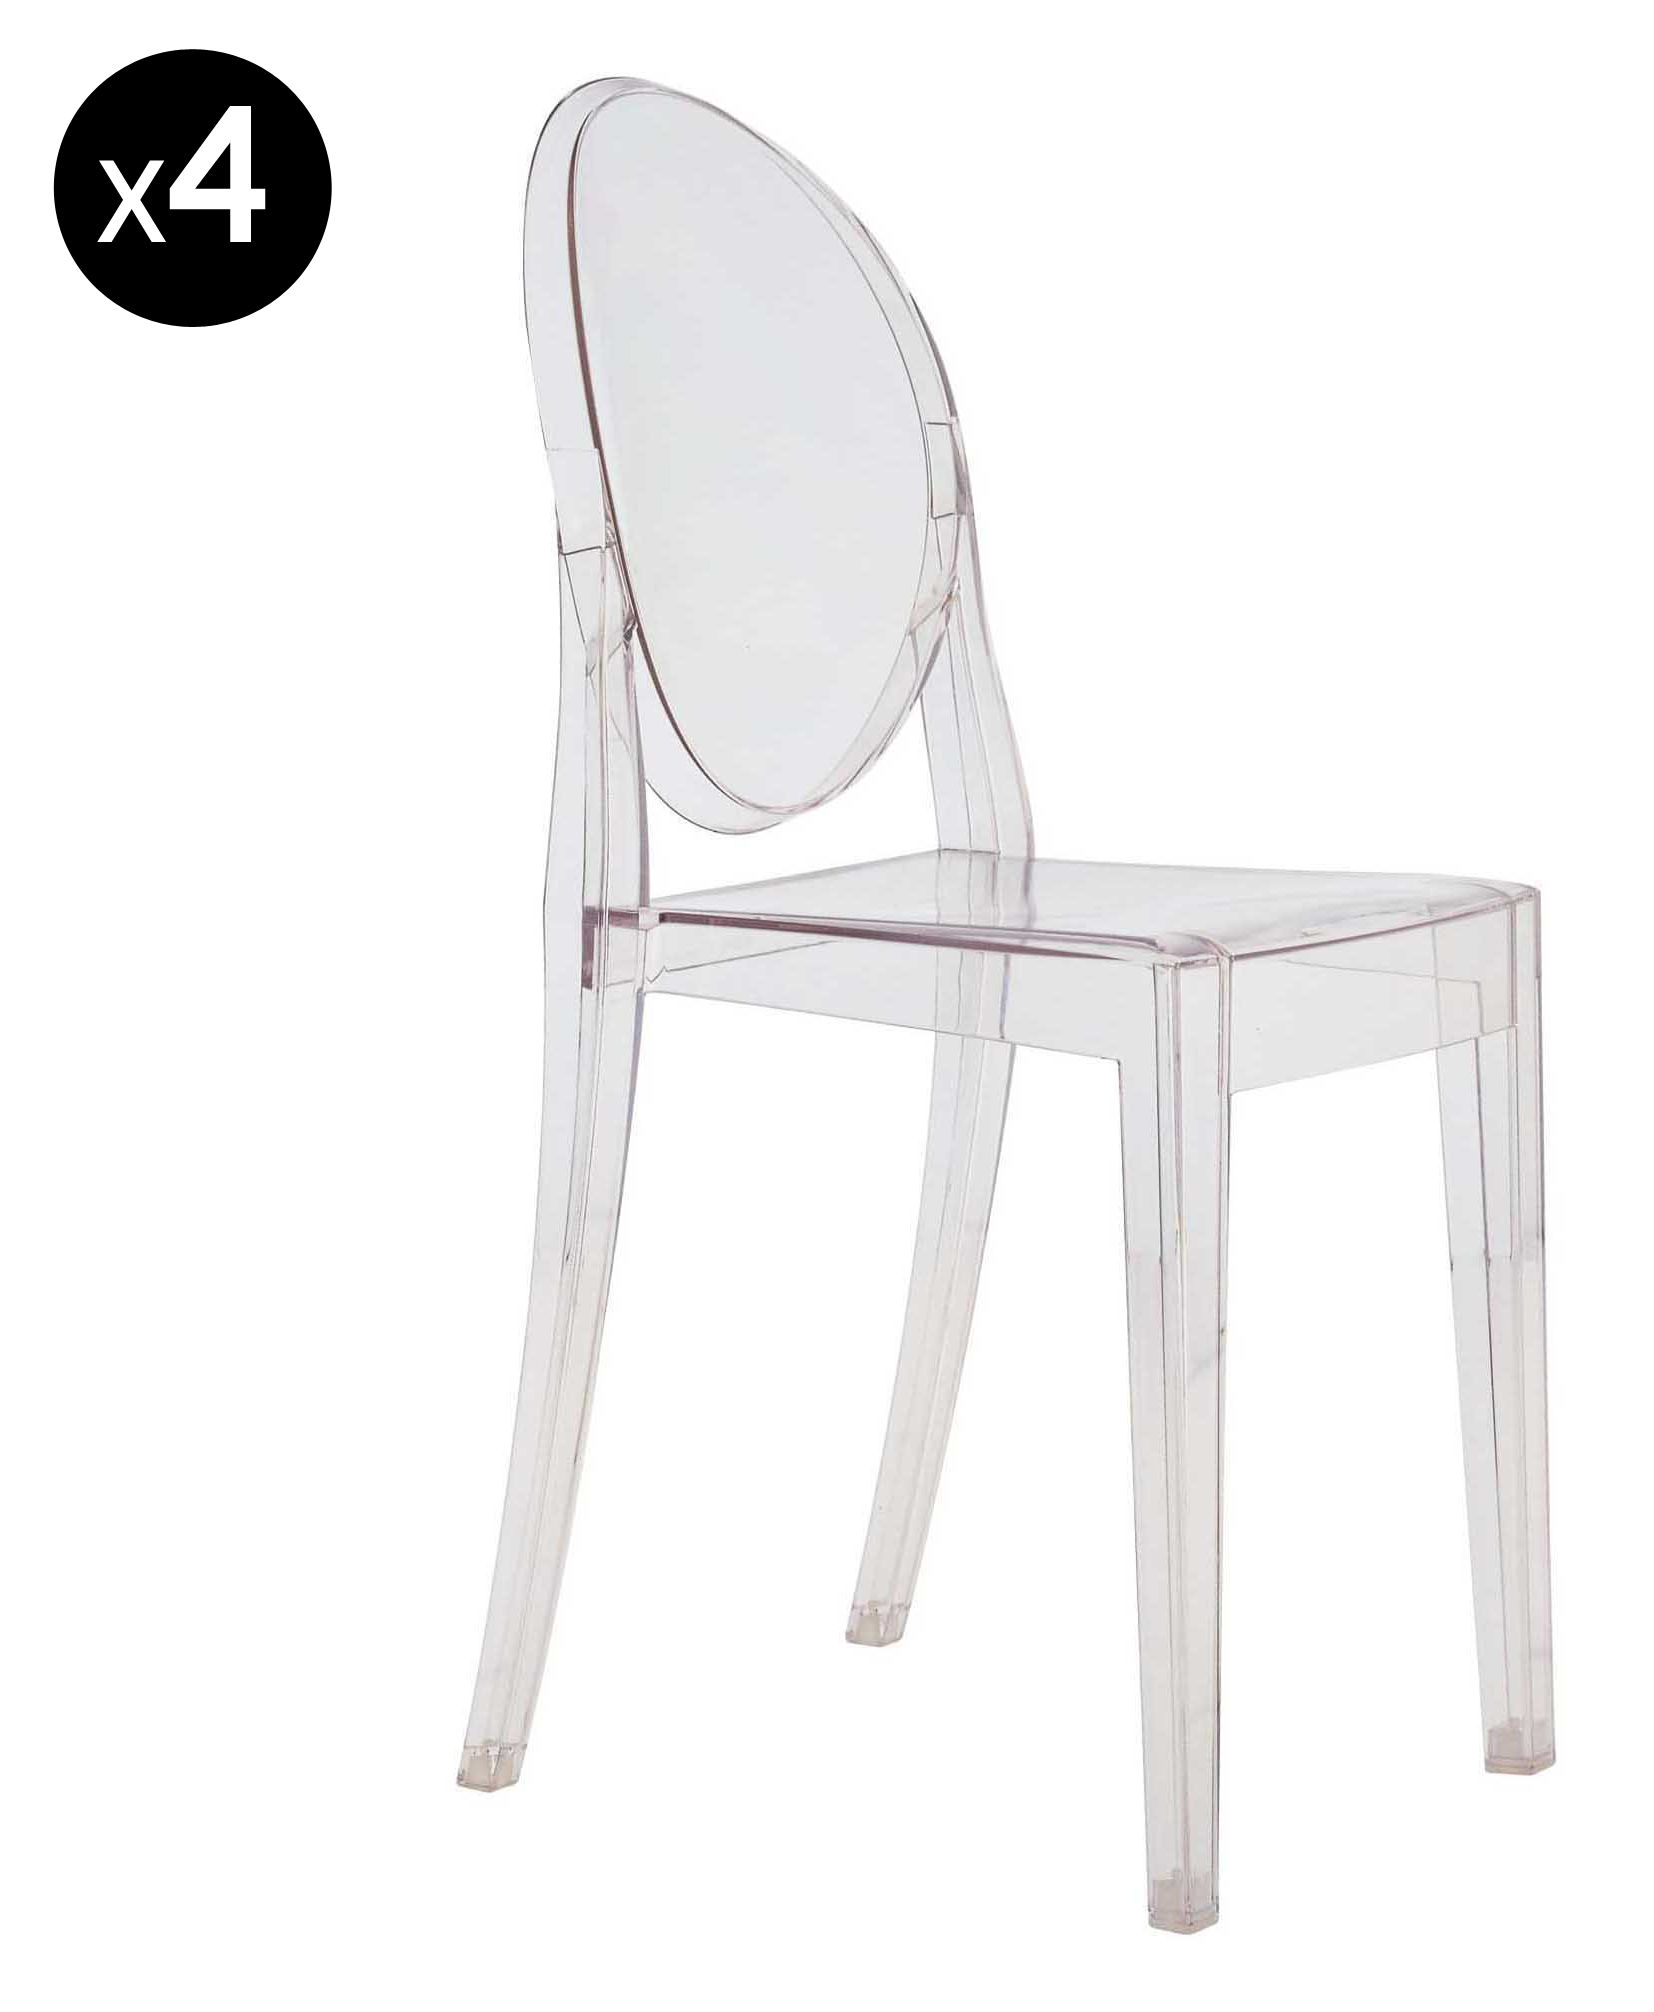 Chaise Philippe Starck Chaise Empilable Victoria Ghost Lot De 4 Kartell